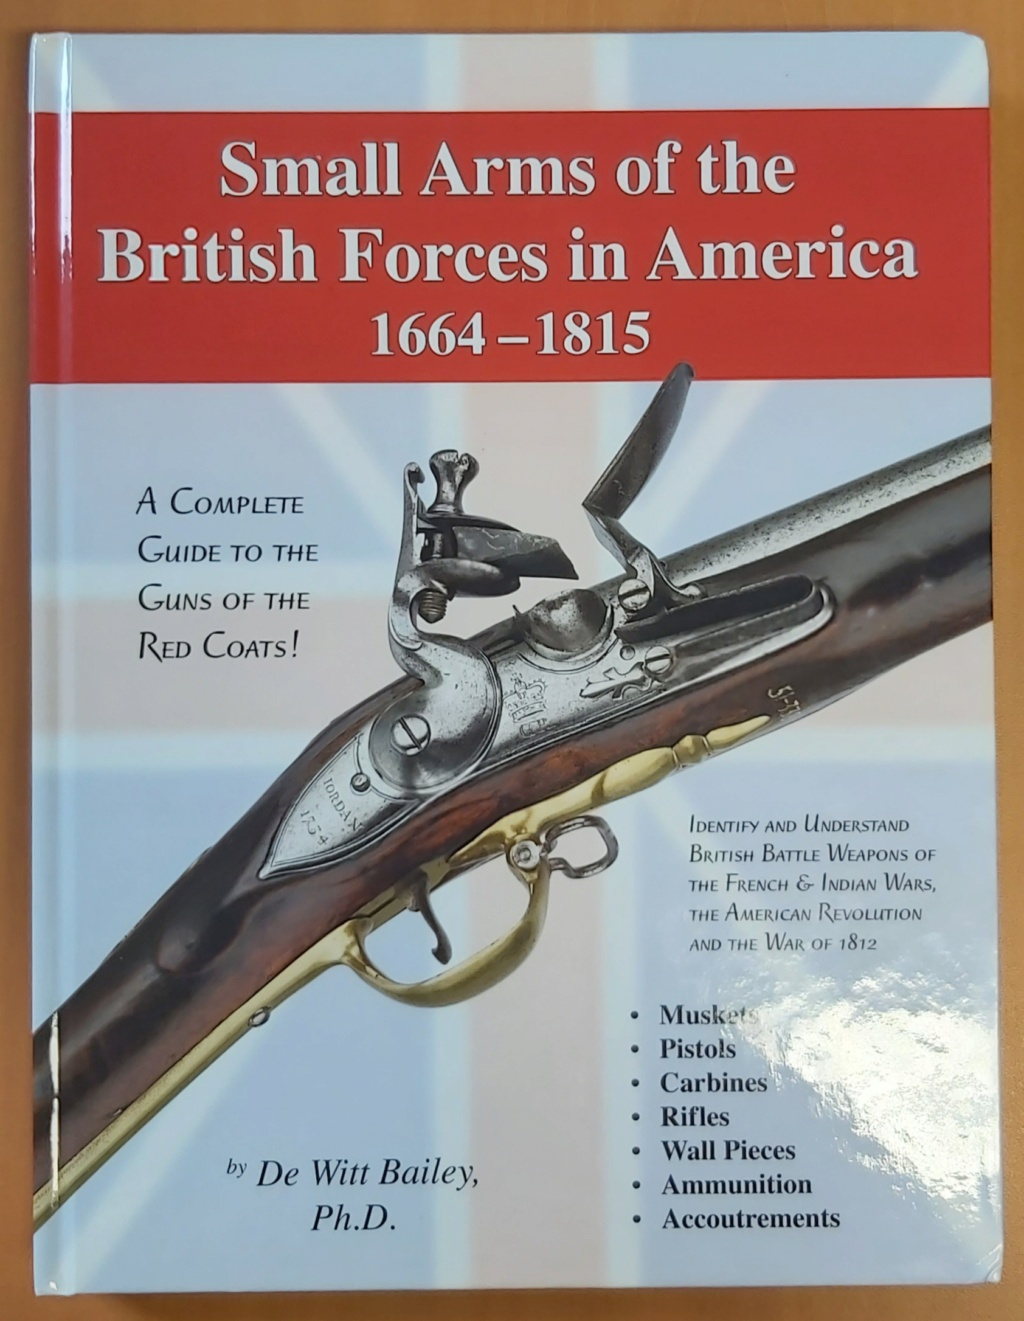 Small Arms of the British Forces in America 1664 - 1815 Livre_10